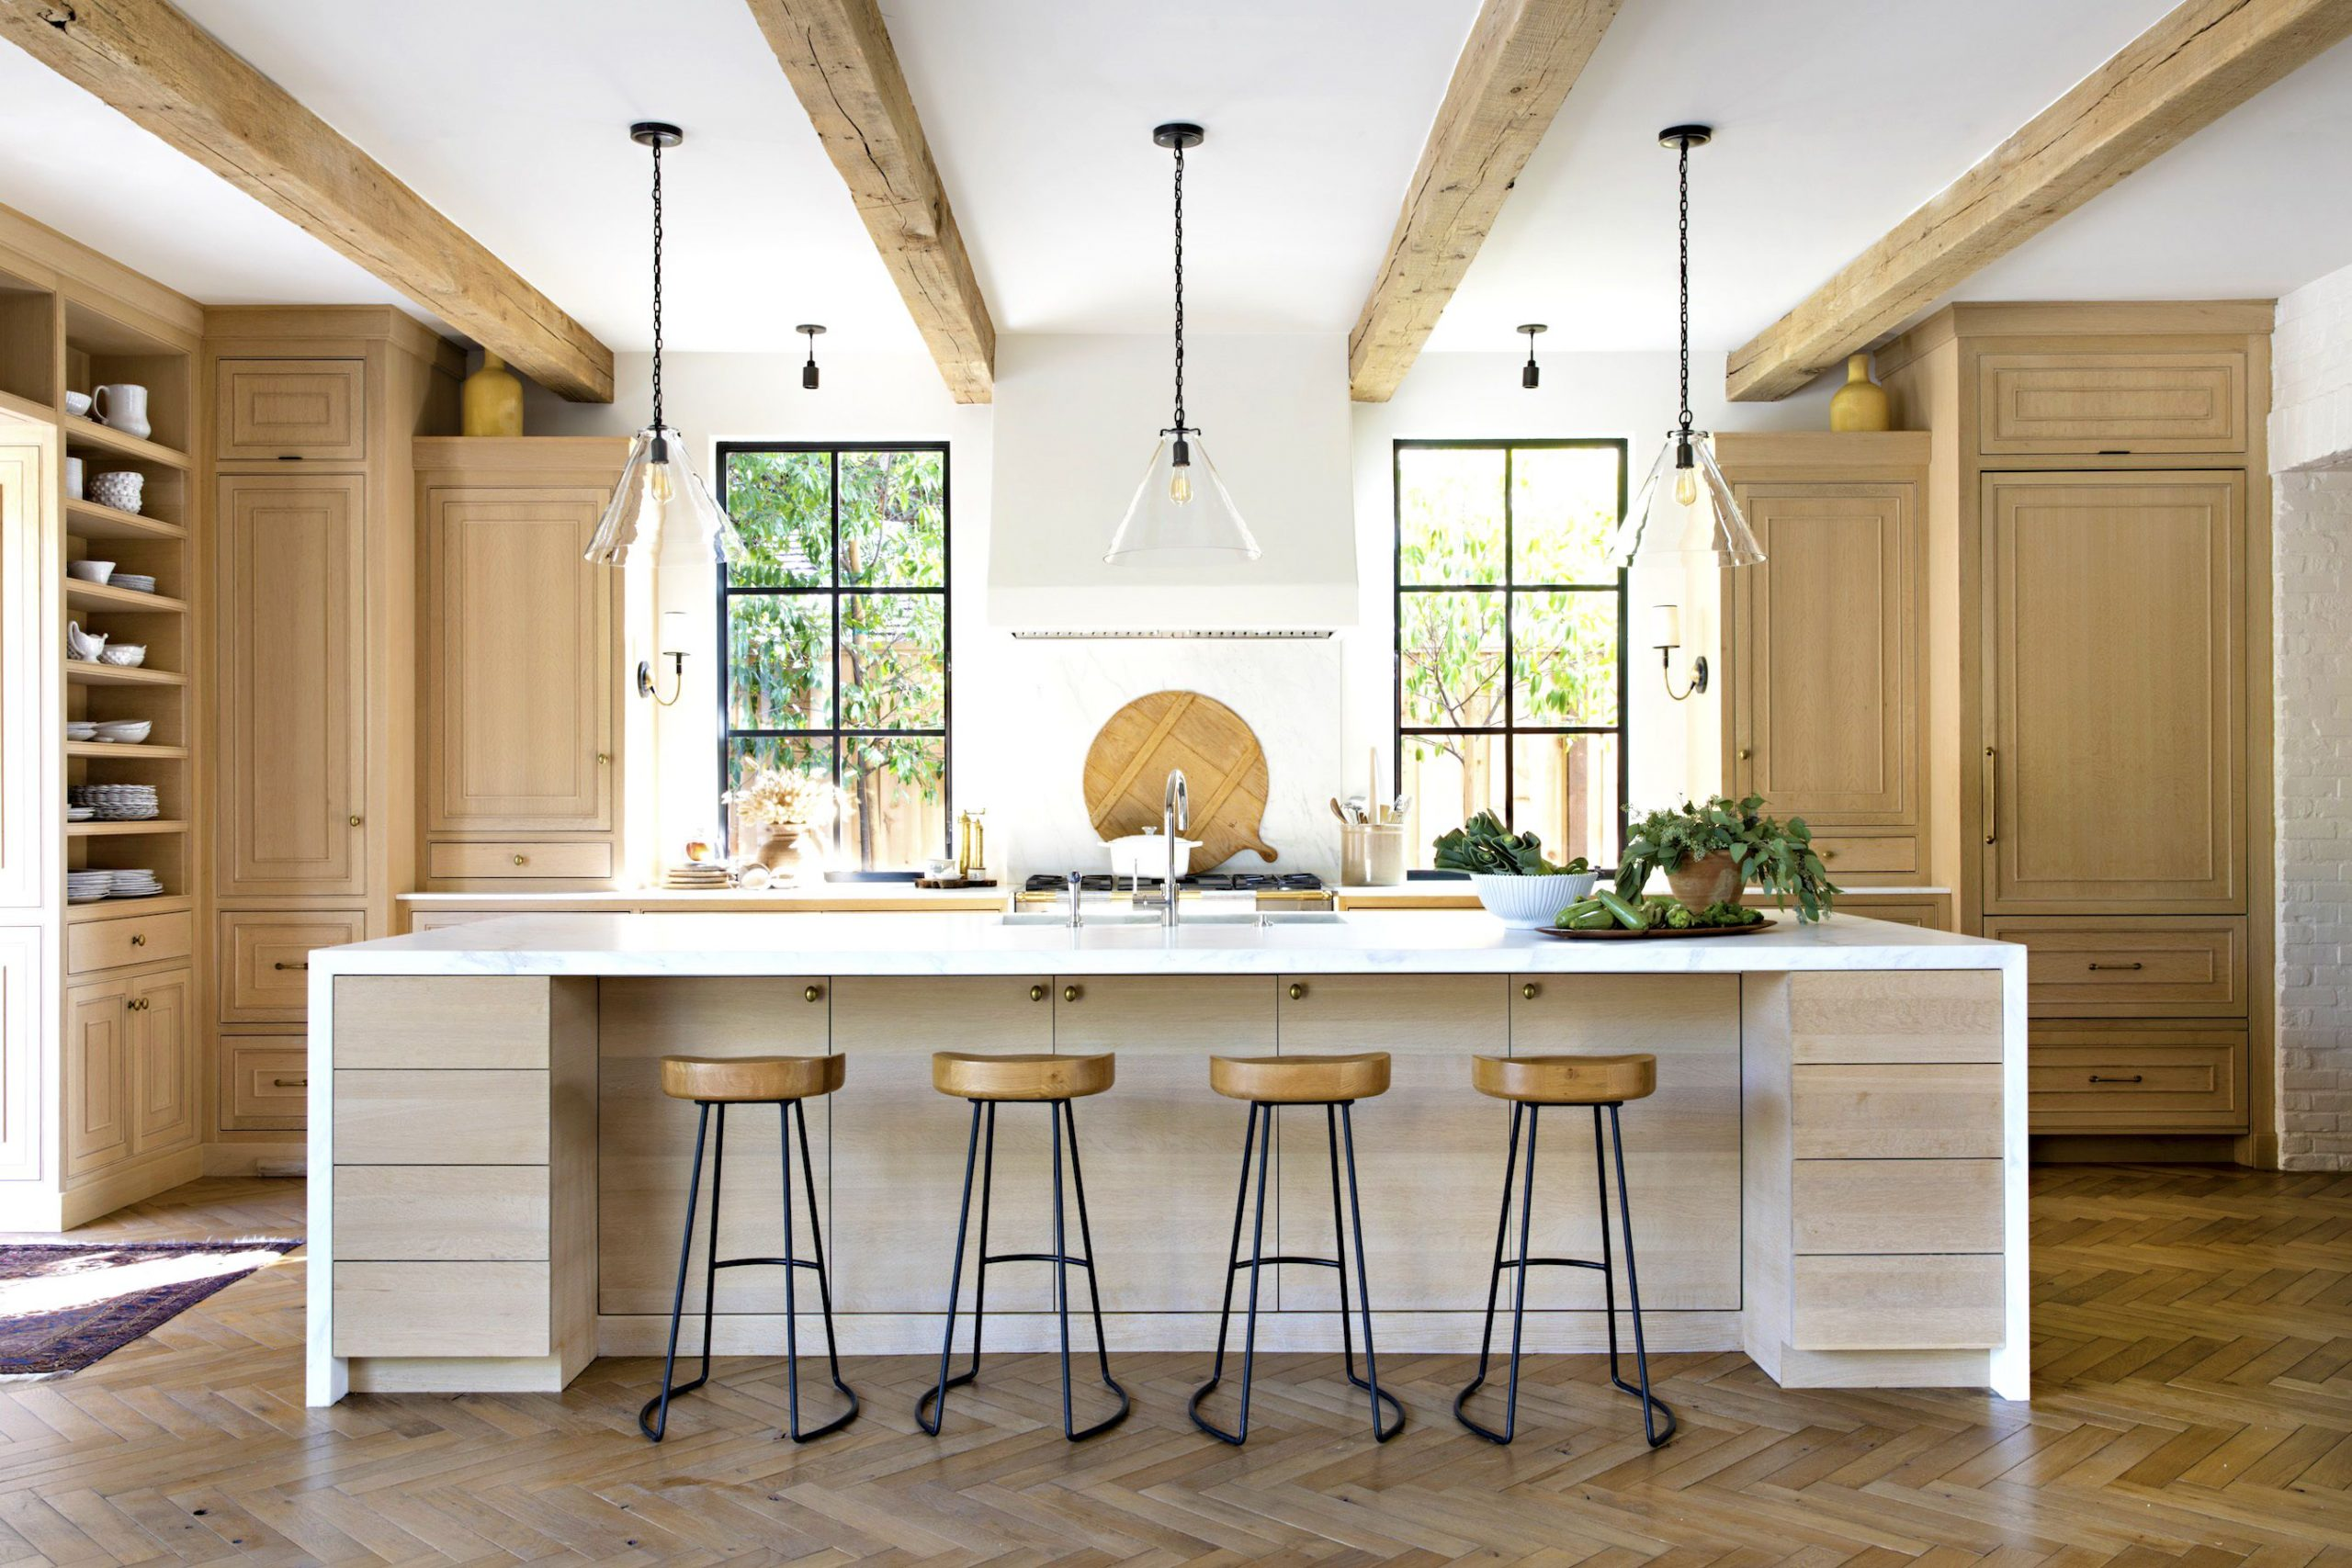 Oakland Remodeling Contractors - New Kitchen Remodeling